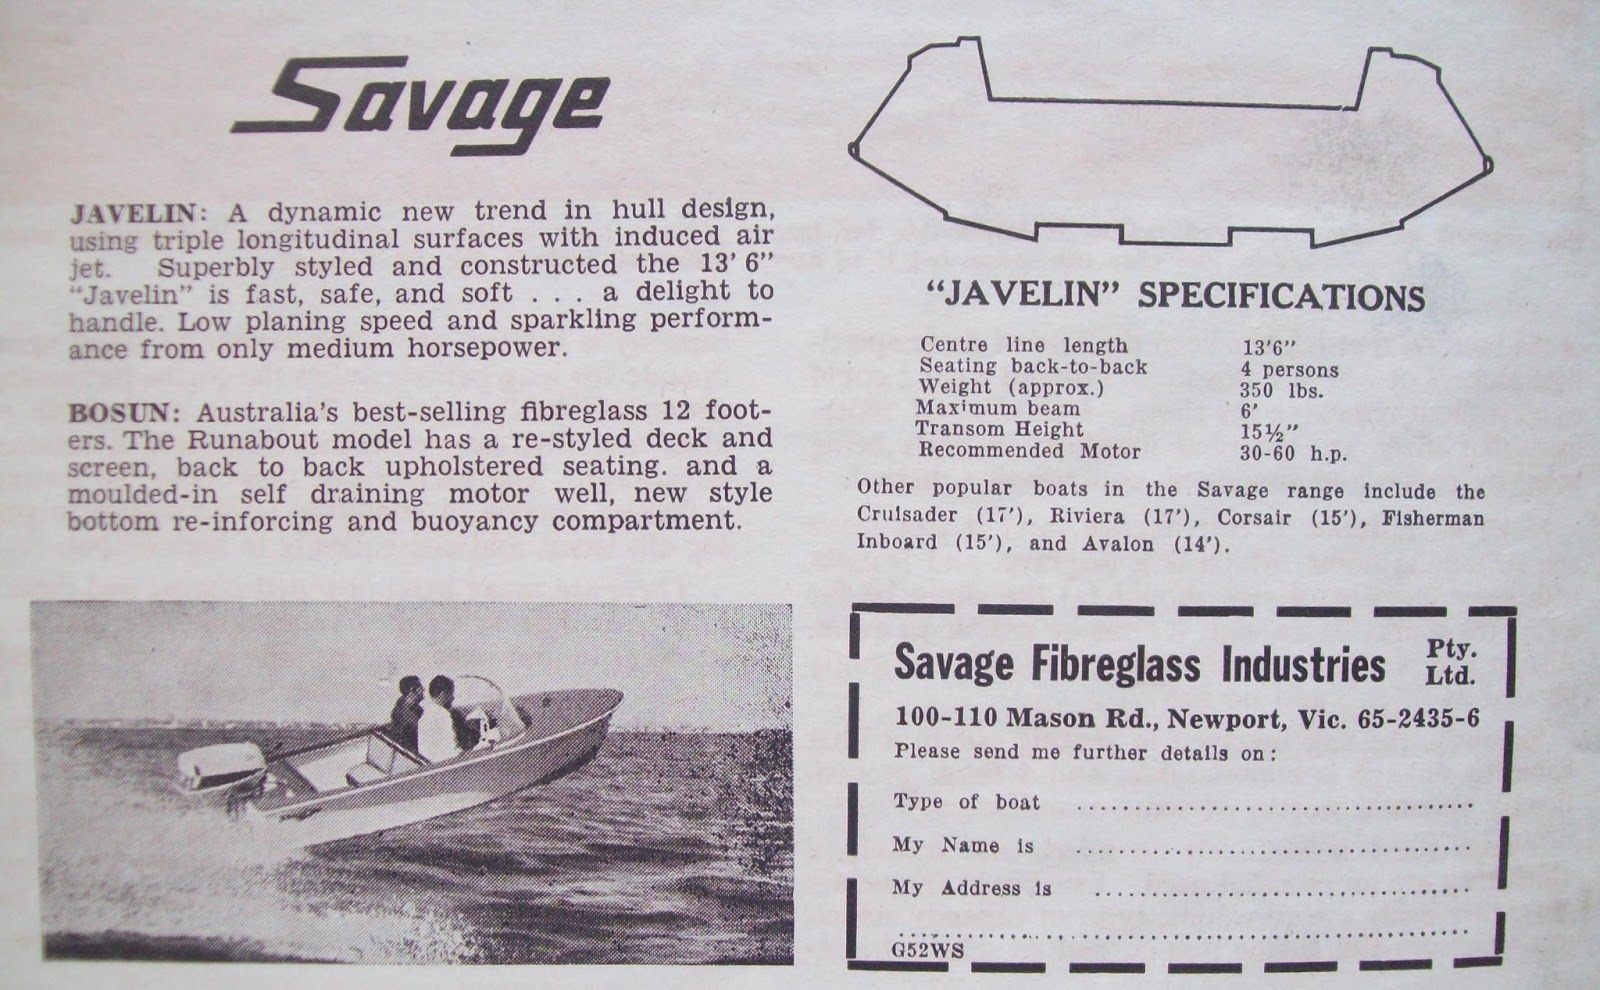 Snap Old Fashioned Tahiti Jet Boat Wiring Diagram Ensign Electrical Ski Nautique Harness Luxury Image Collection Ideas Blogitiacom